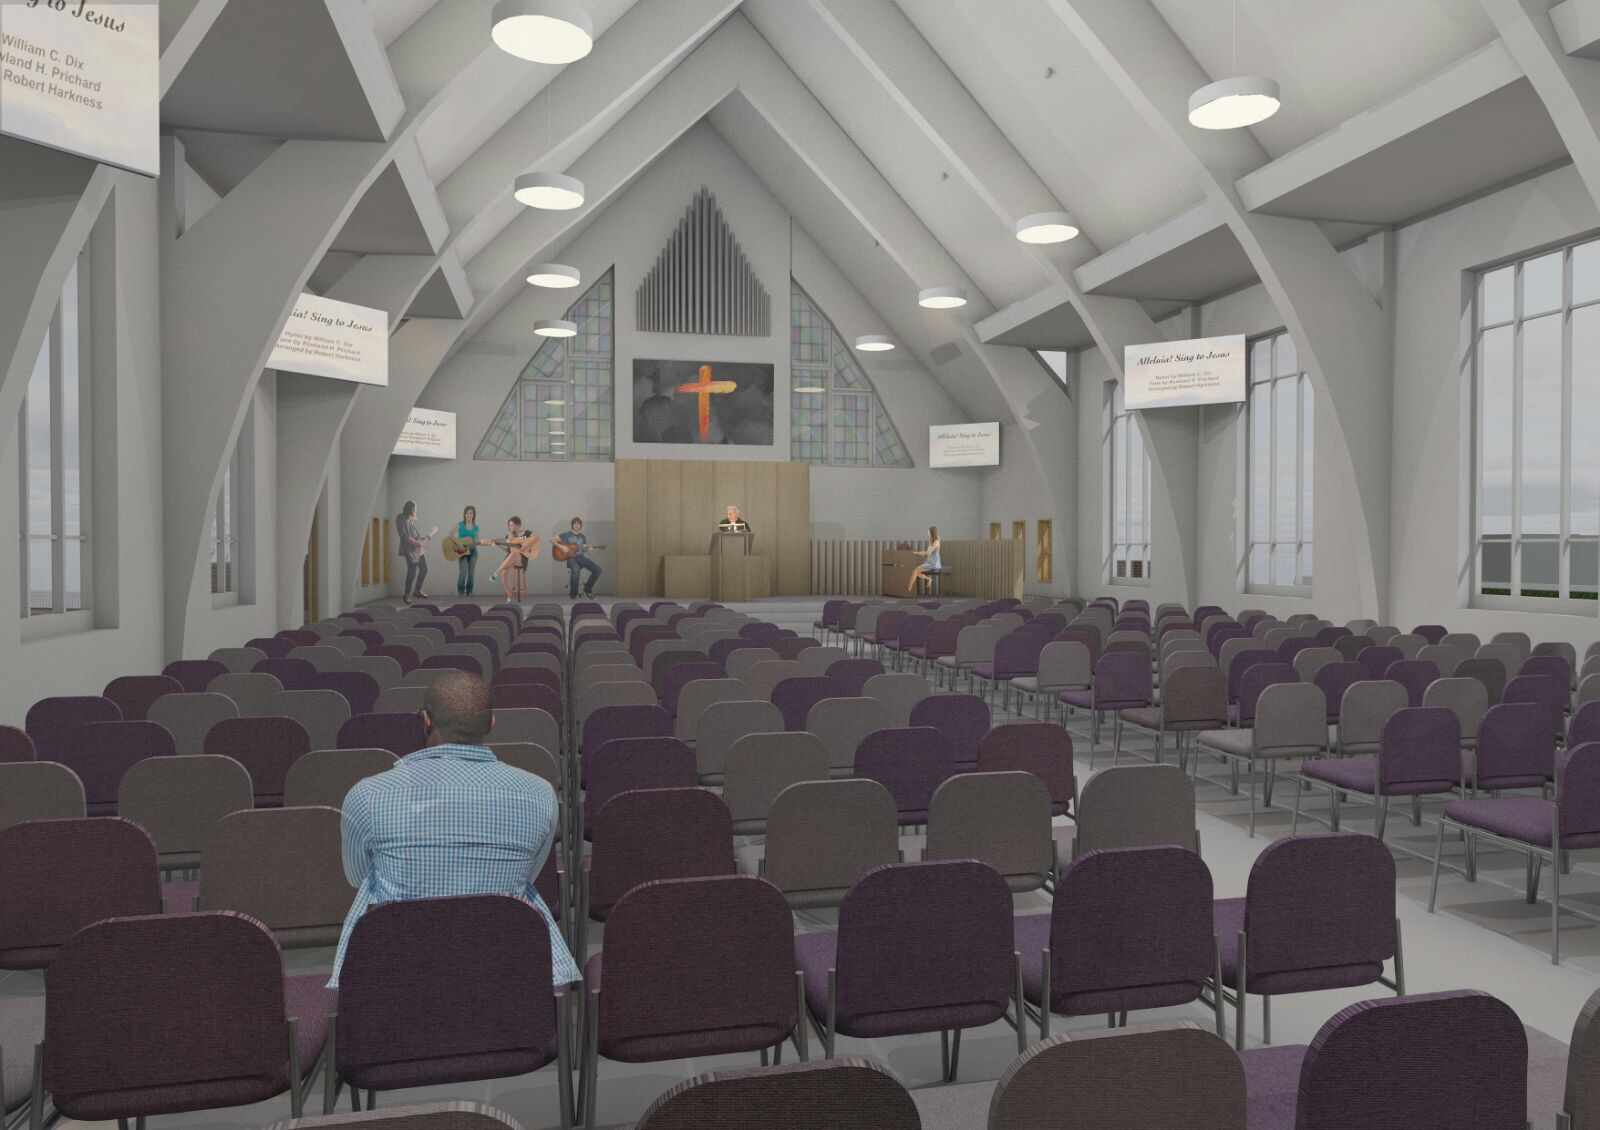 An architect's impression of the renovated sanctuary. Notable features include the larger platform at the front, disabled access to the stage, and stained glass feature windows. Note this is an artists impression which may change.